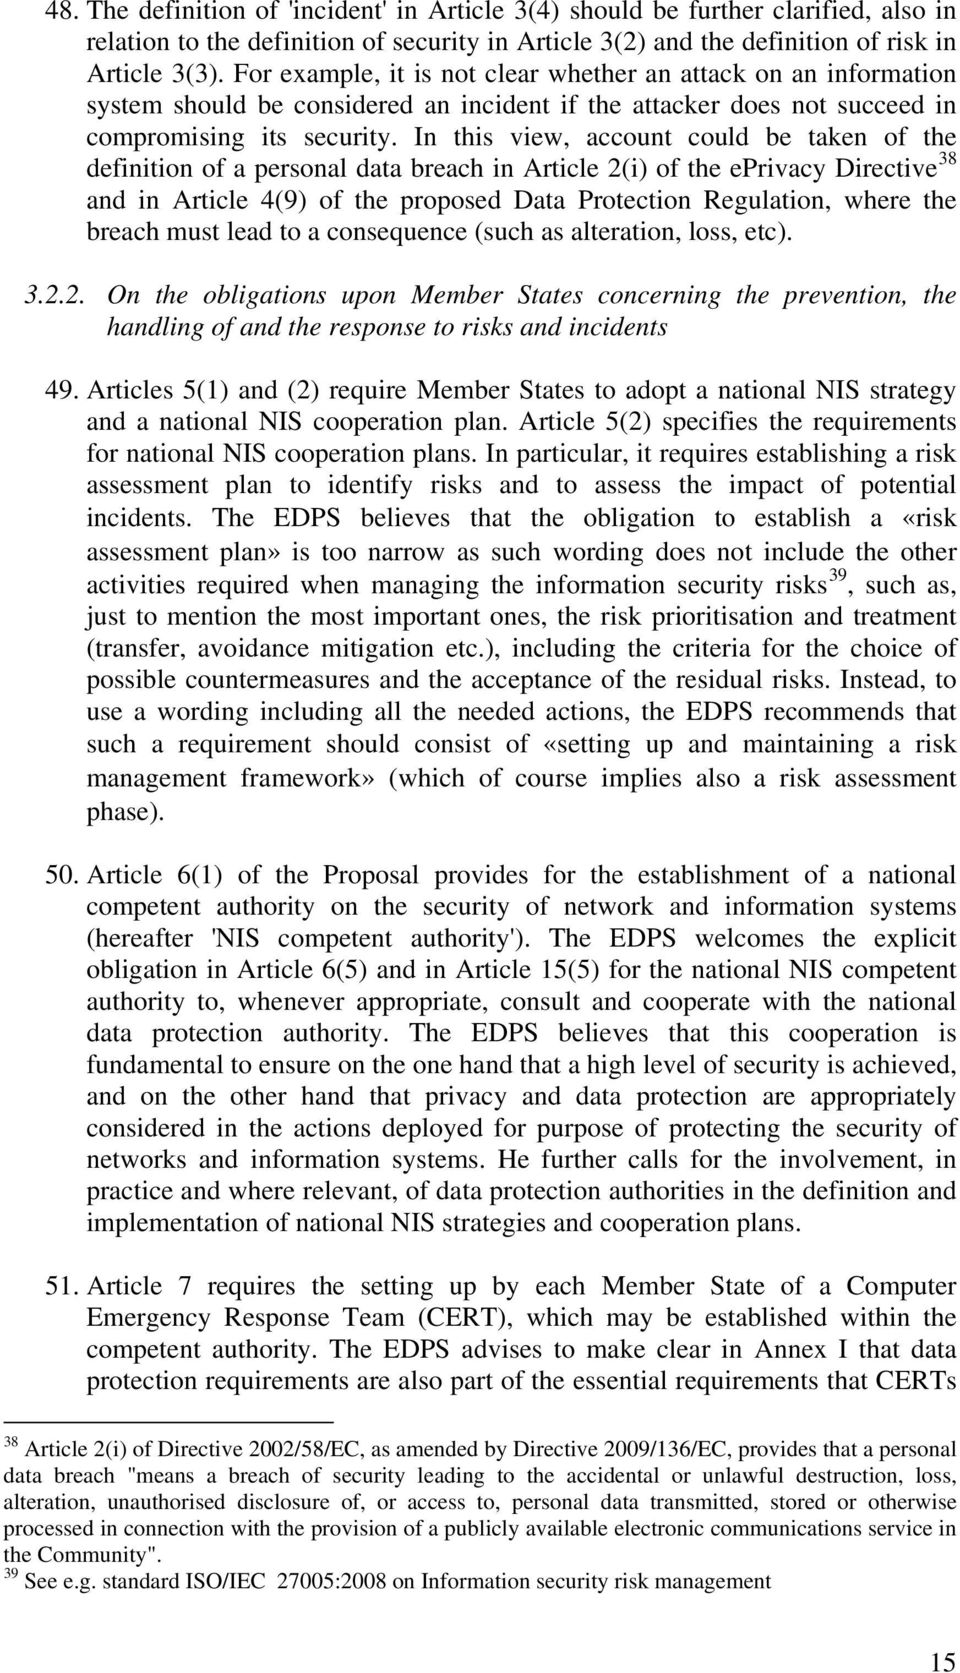 In this view, account could be taken of the definition of a personal data breach in Article 2(i) of the eprivacy Directive 38 and in Article 4(9) of the proposed Data Protection Regulation, where the